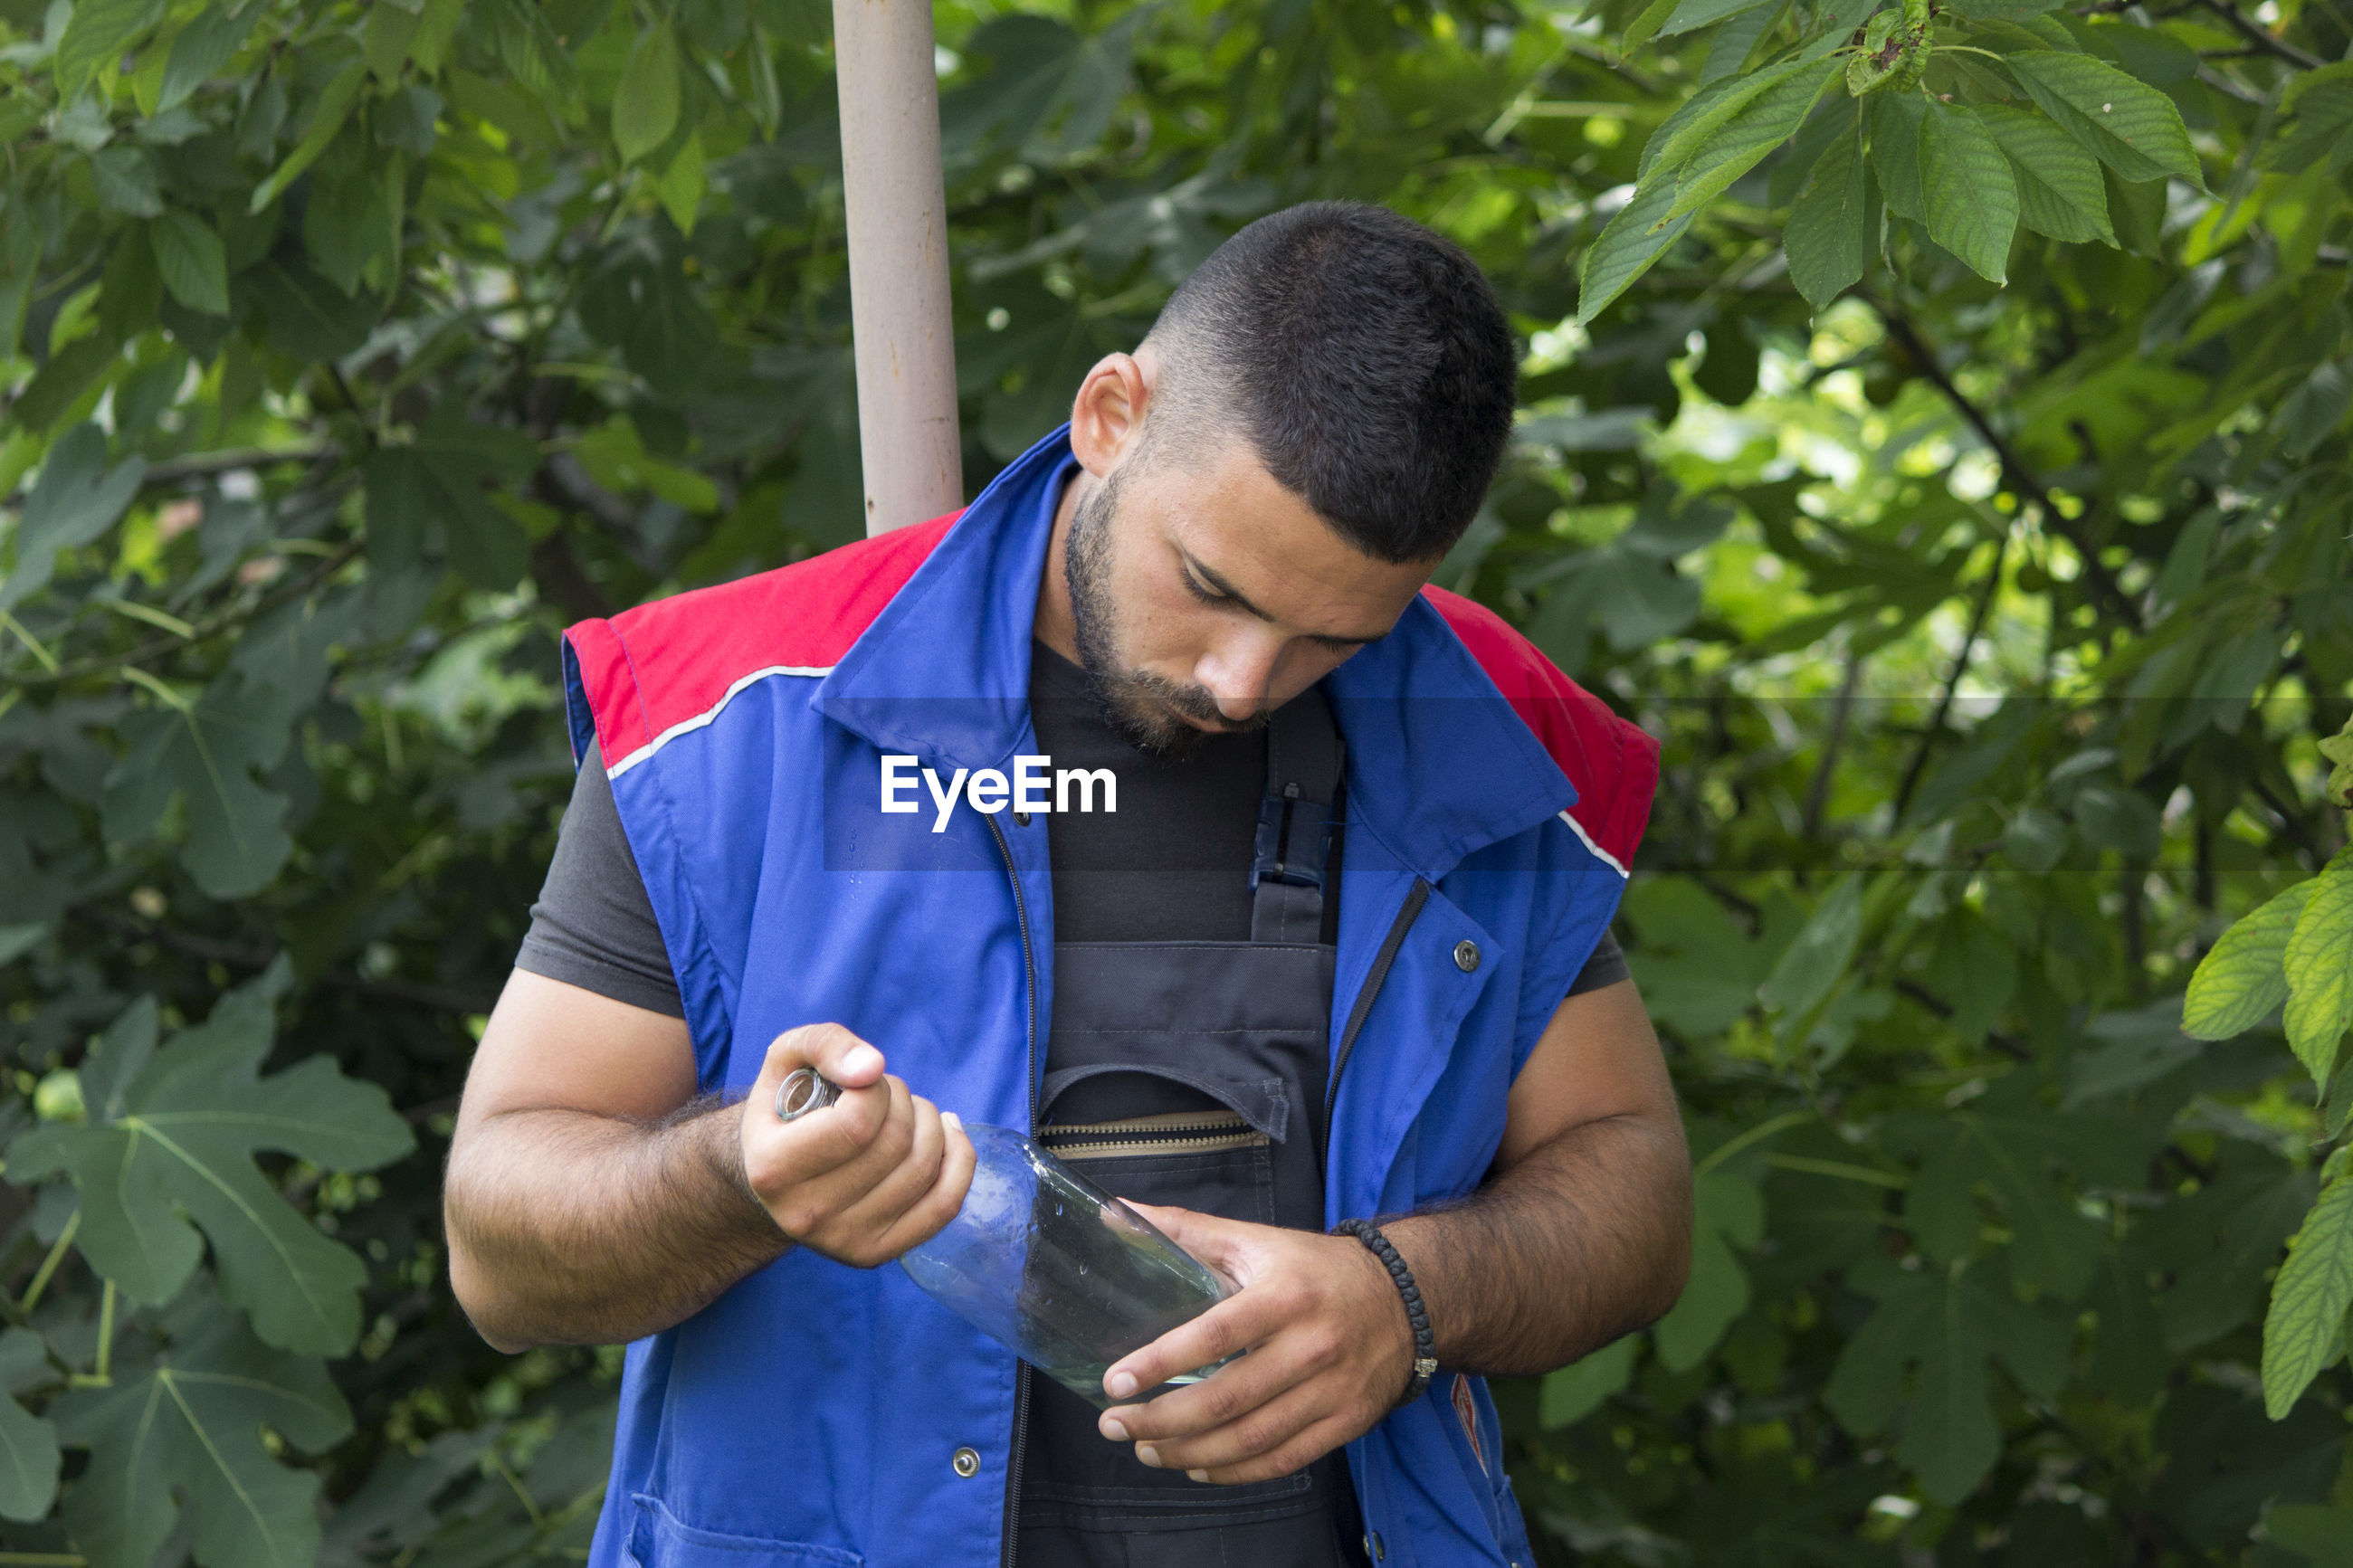 YOUNG MAN LOOKING AWAY AGAINST PLANTS